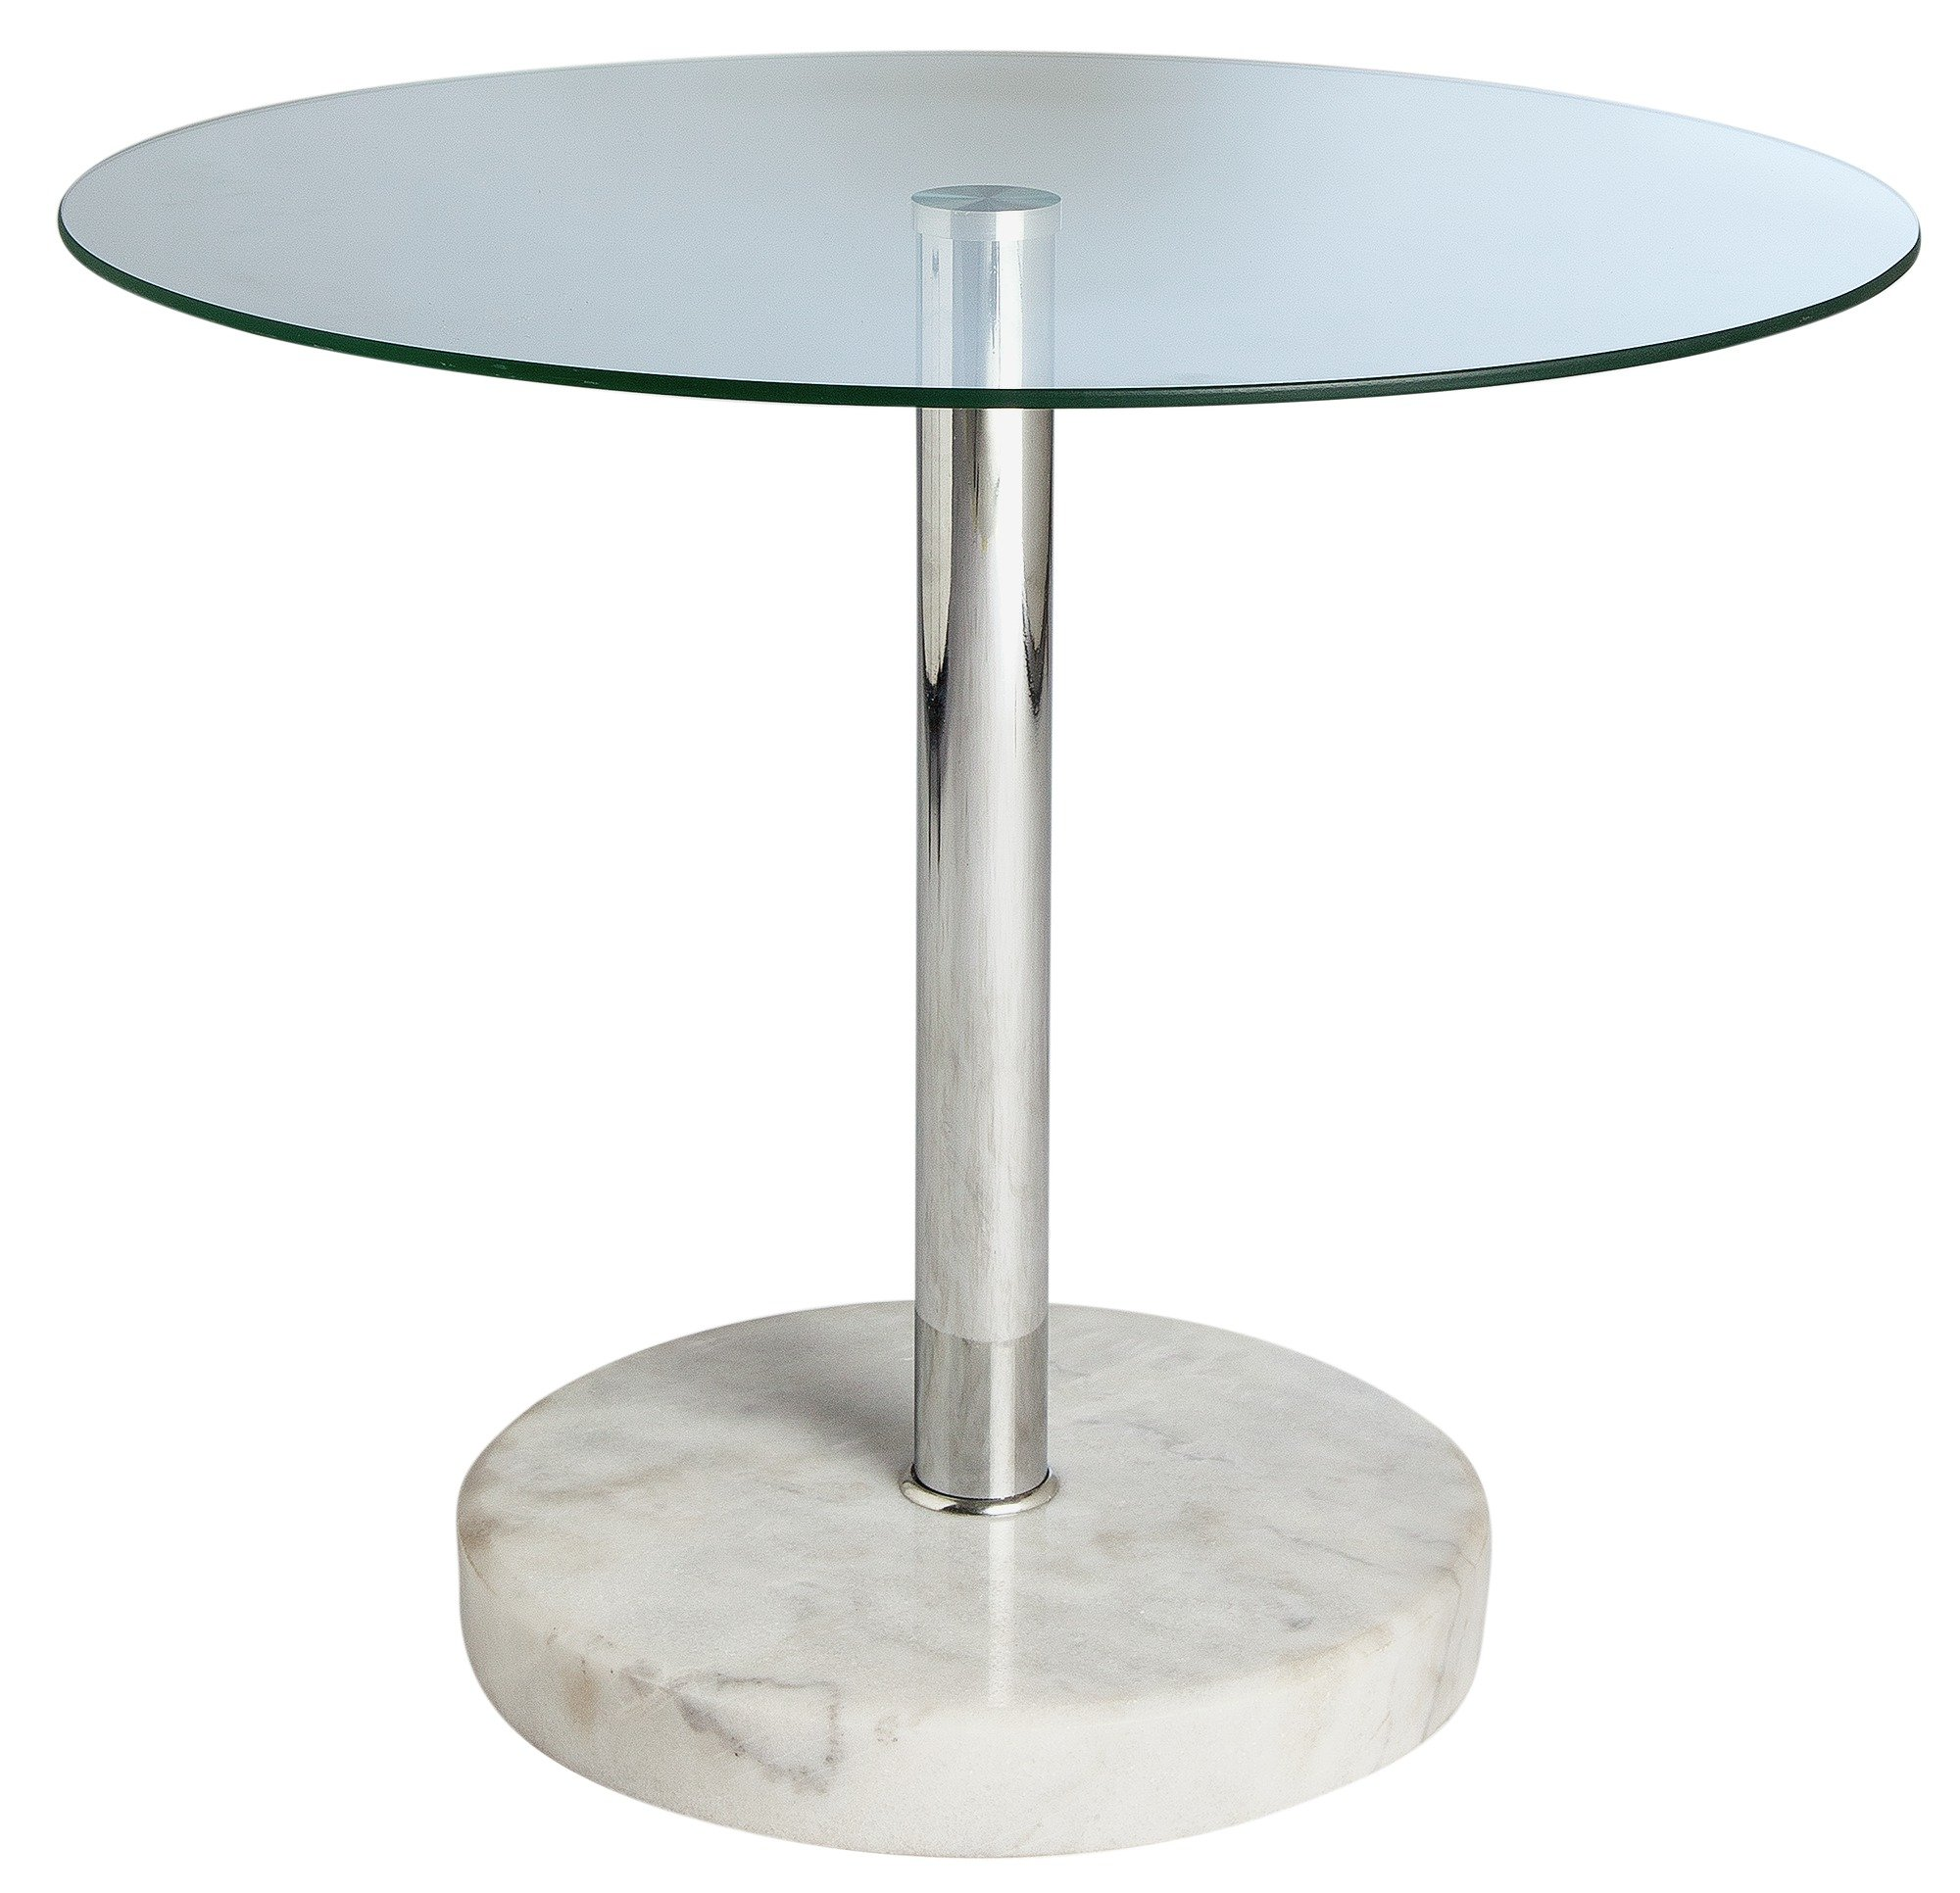 Marble Effect Coffee Table Uk: Argos Price Tracker